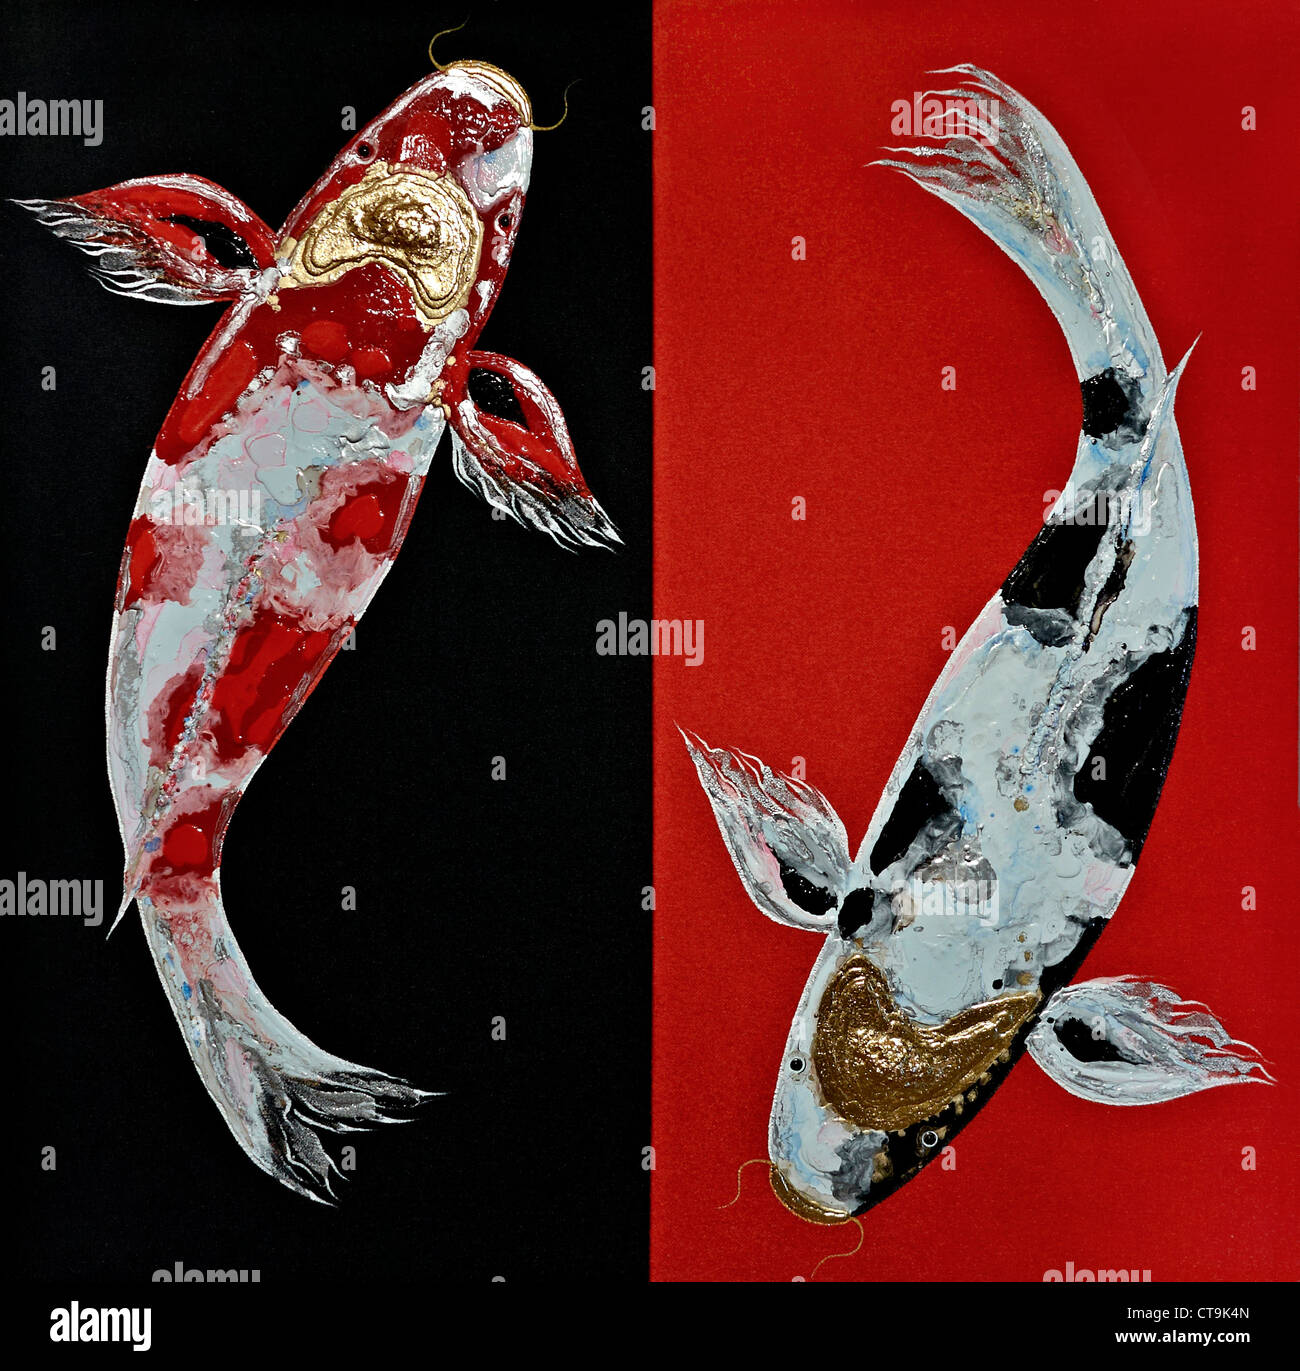 Colorful Koi Carp Painting Stock Photos & Colorful Koi Carp Painting ...